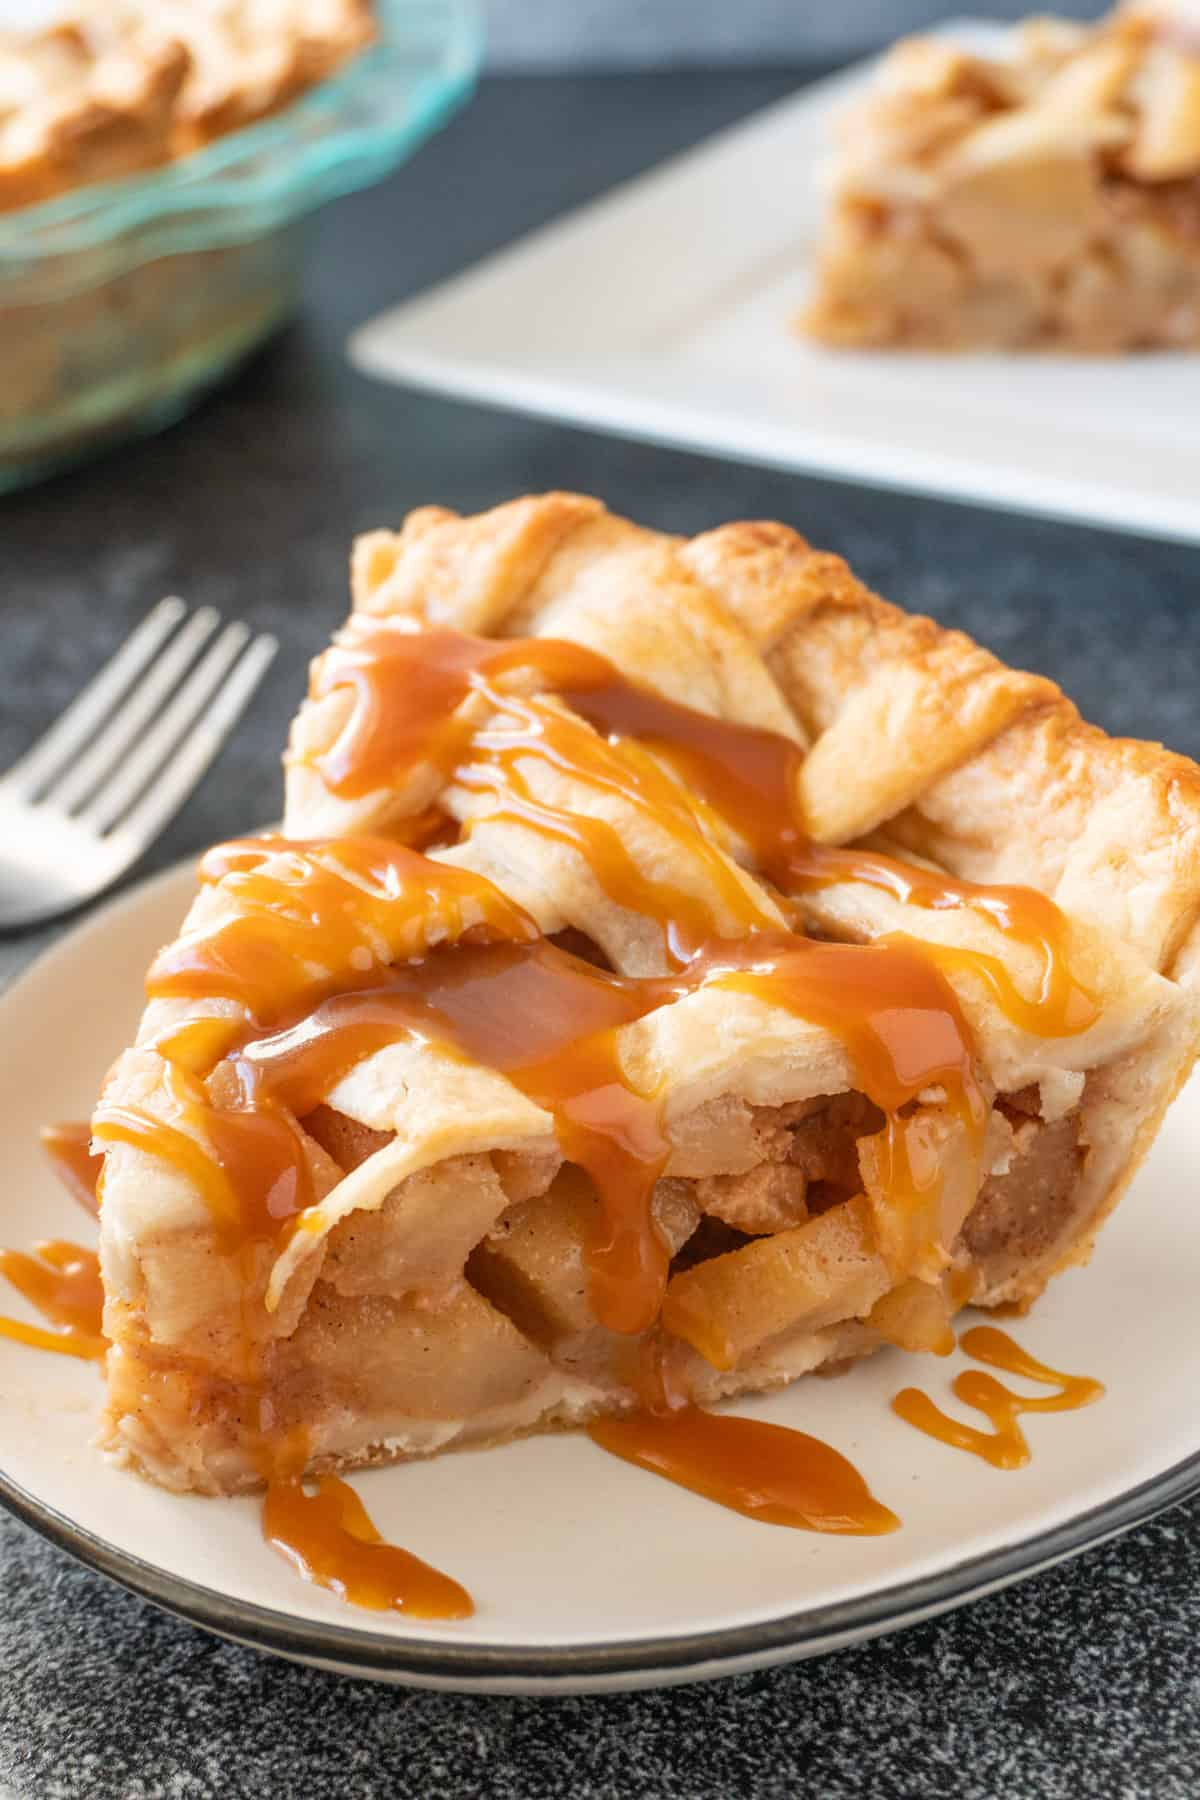 Caramel Pear Pie with caramel drizzled over it